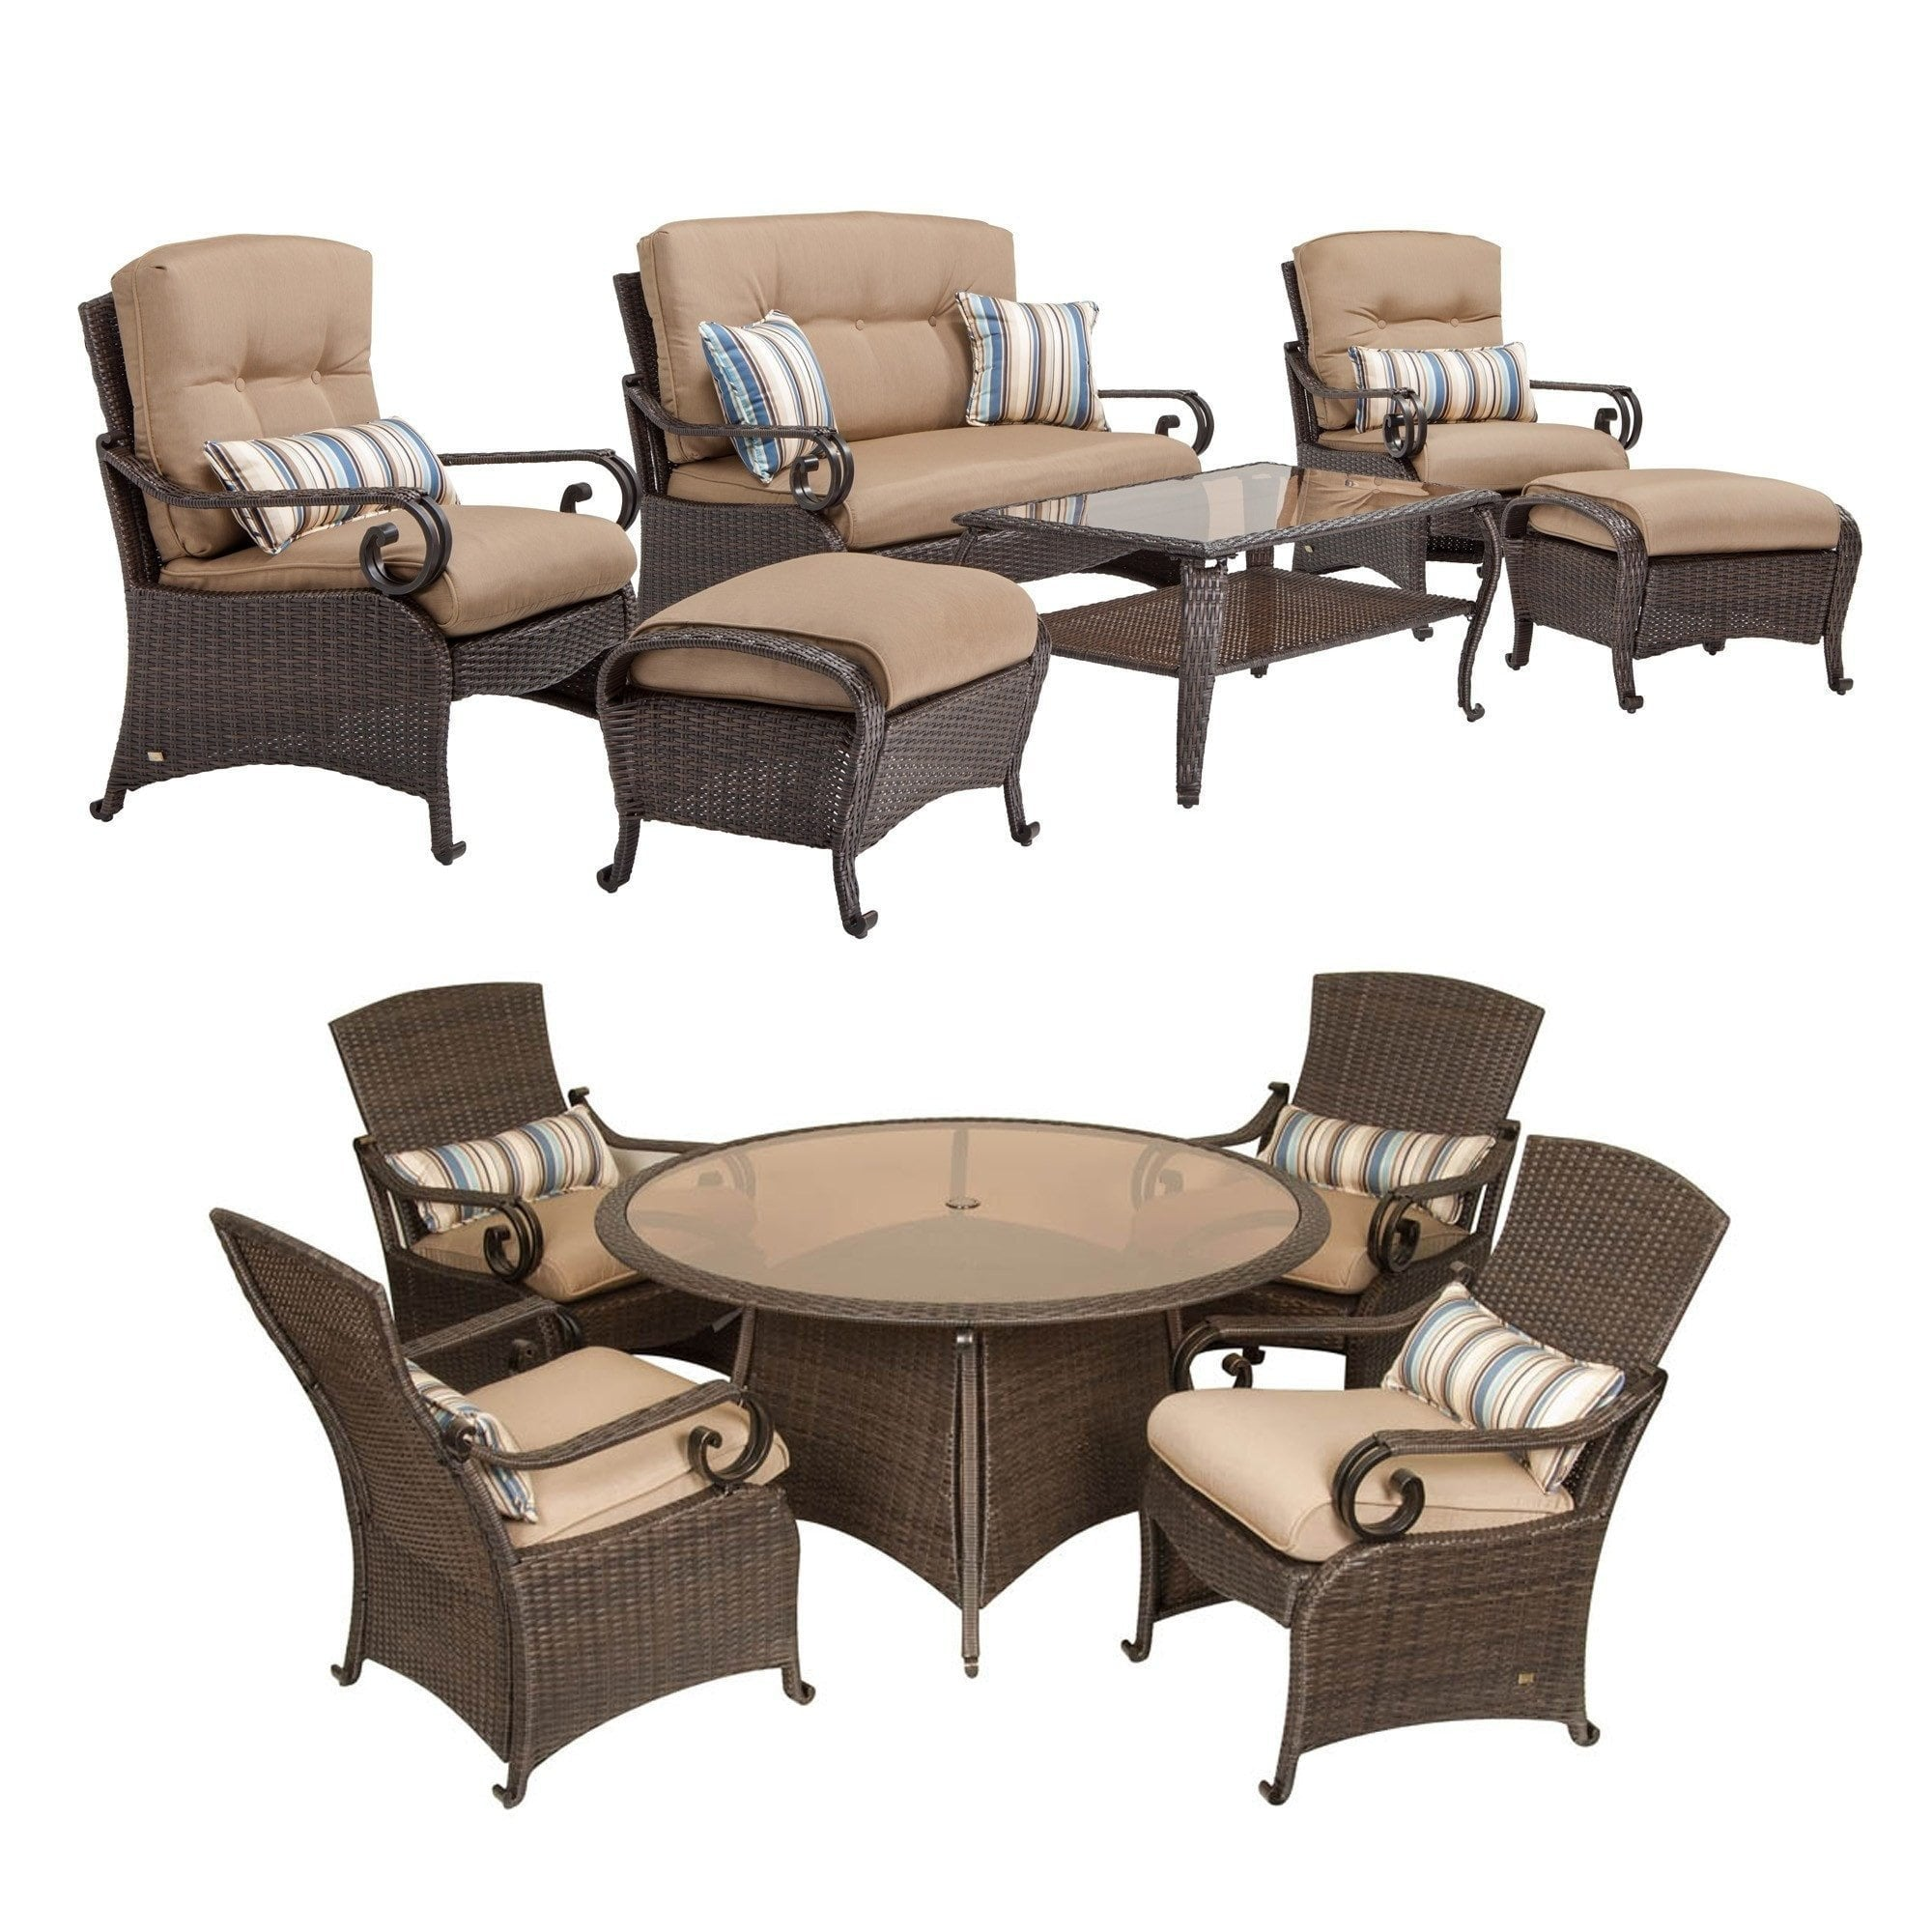 Lake Como Combo 6 Piece Patio Furniture Set and 5 Piece Patio